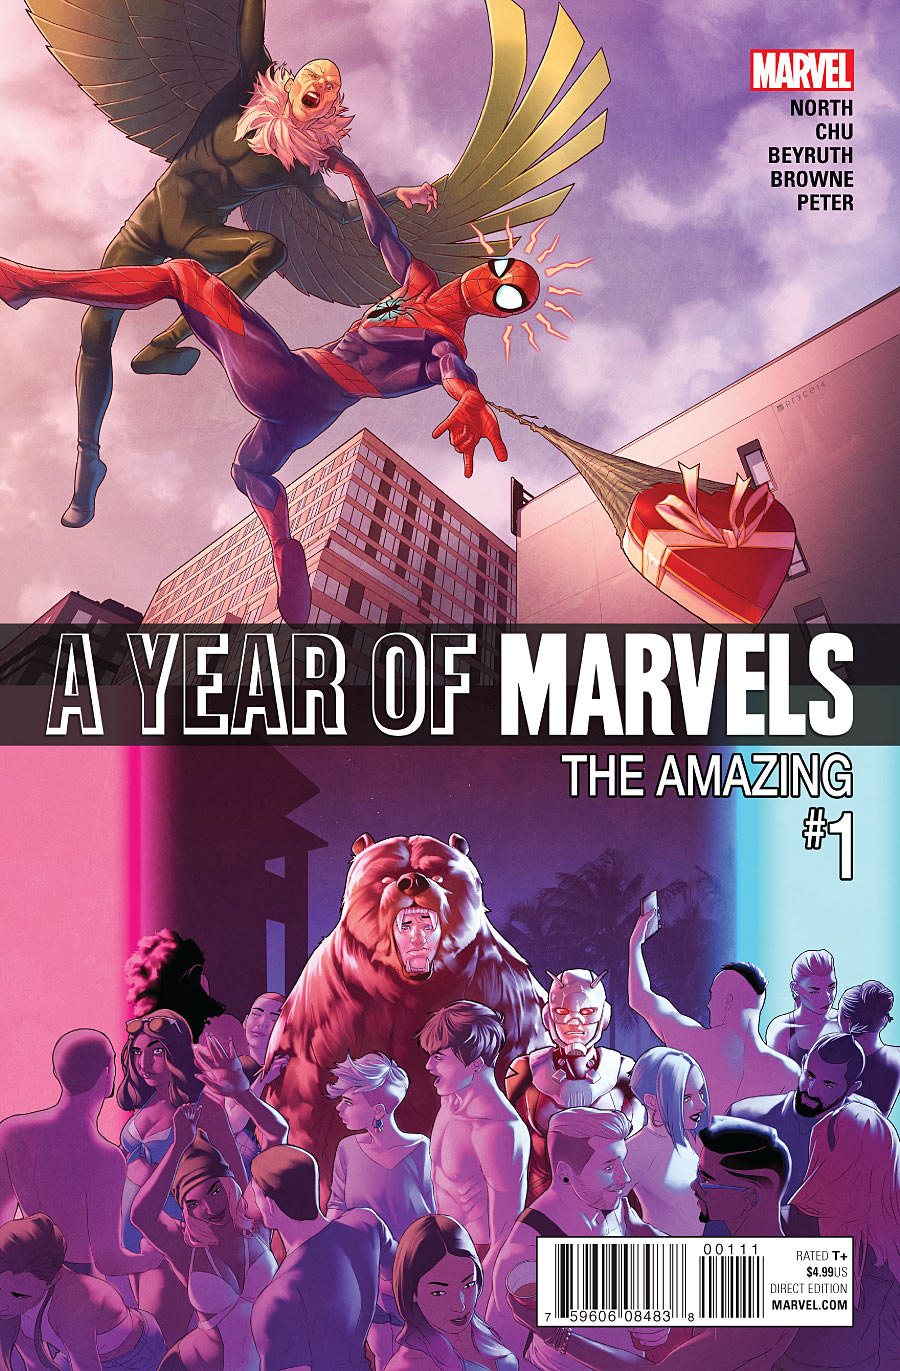 A Year of Marvels: The Amazing #1